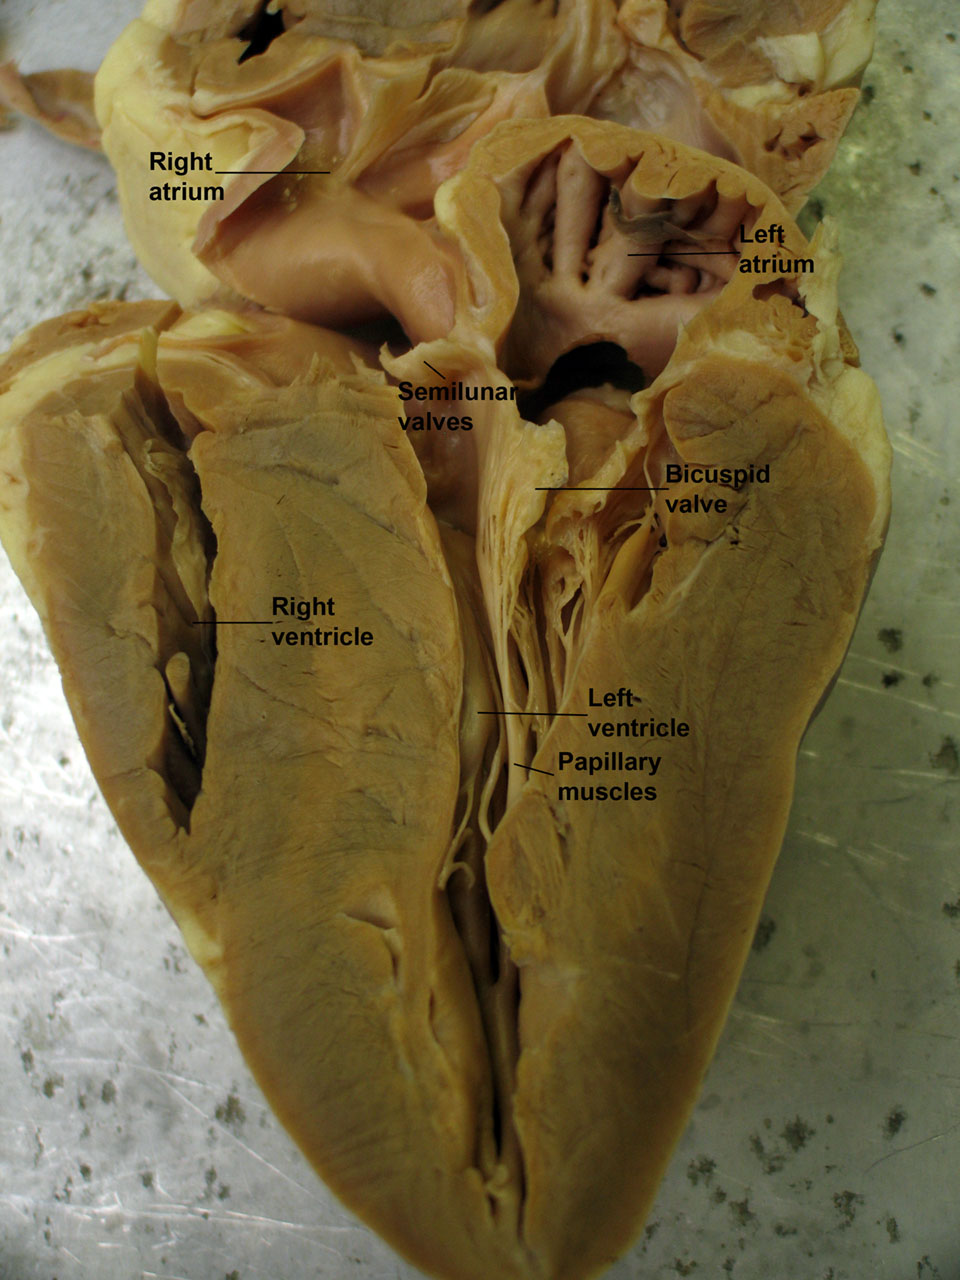 Worksheets Sheep Heart Dissection Lab www quepid org blog archive zoology dissection sheep heart dissection